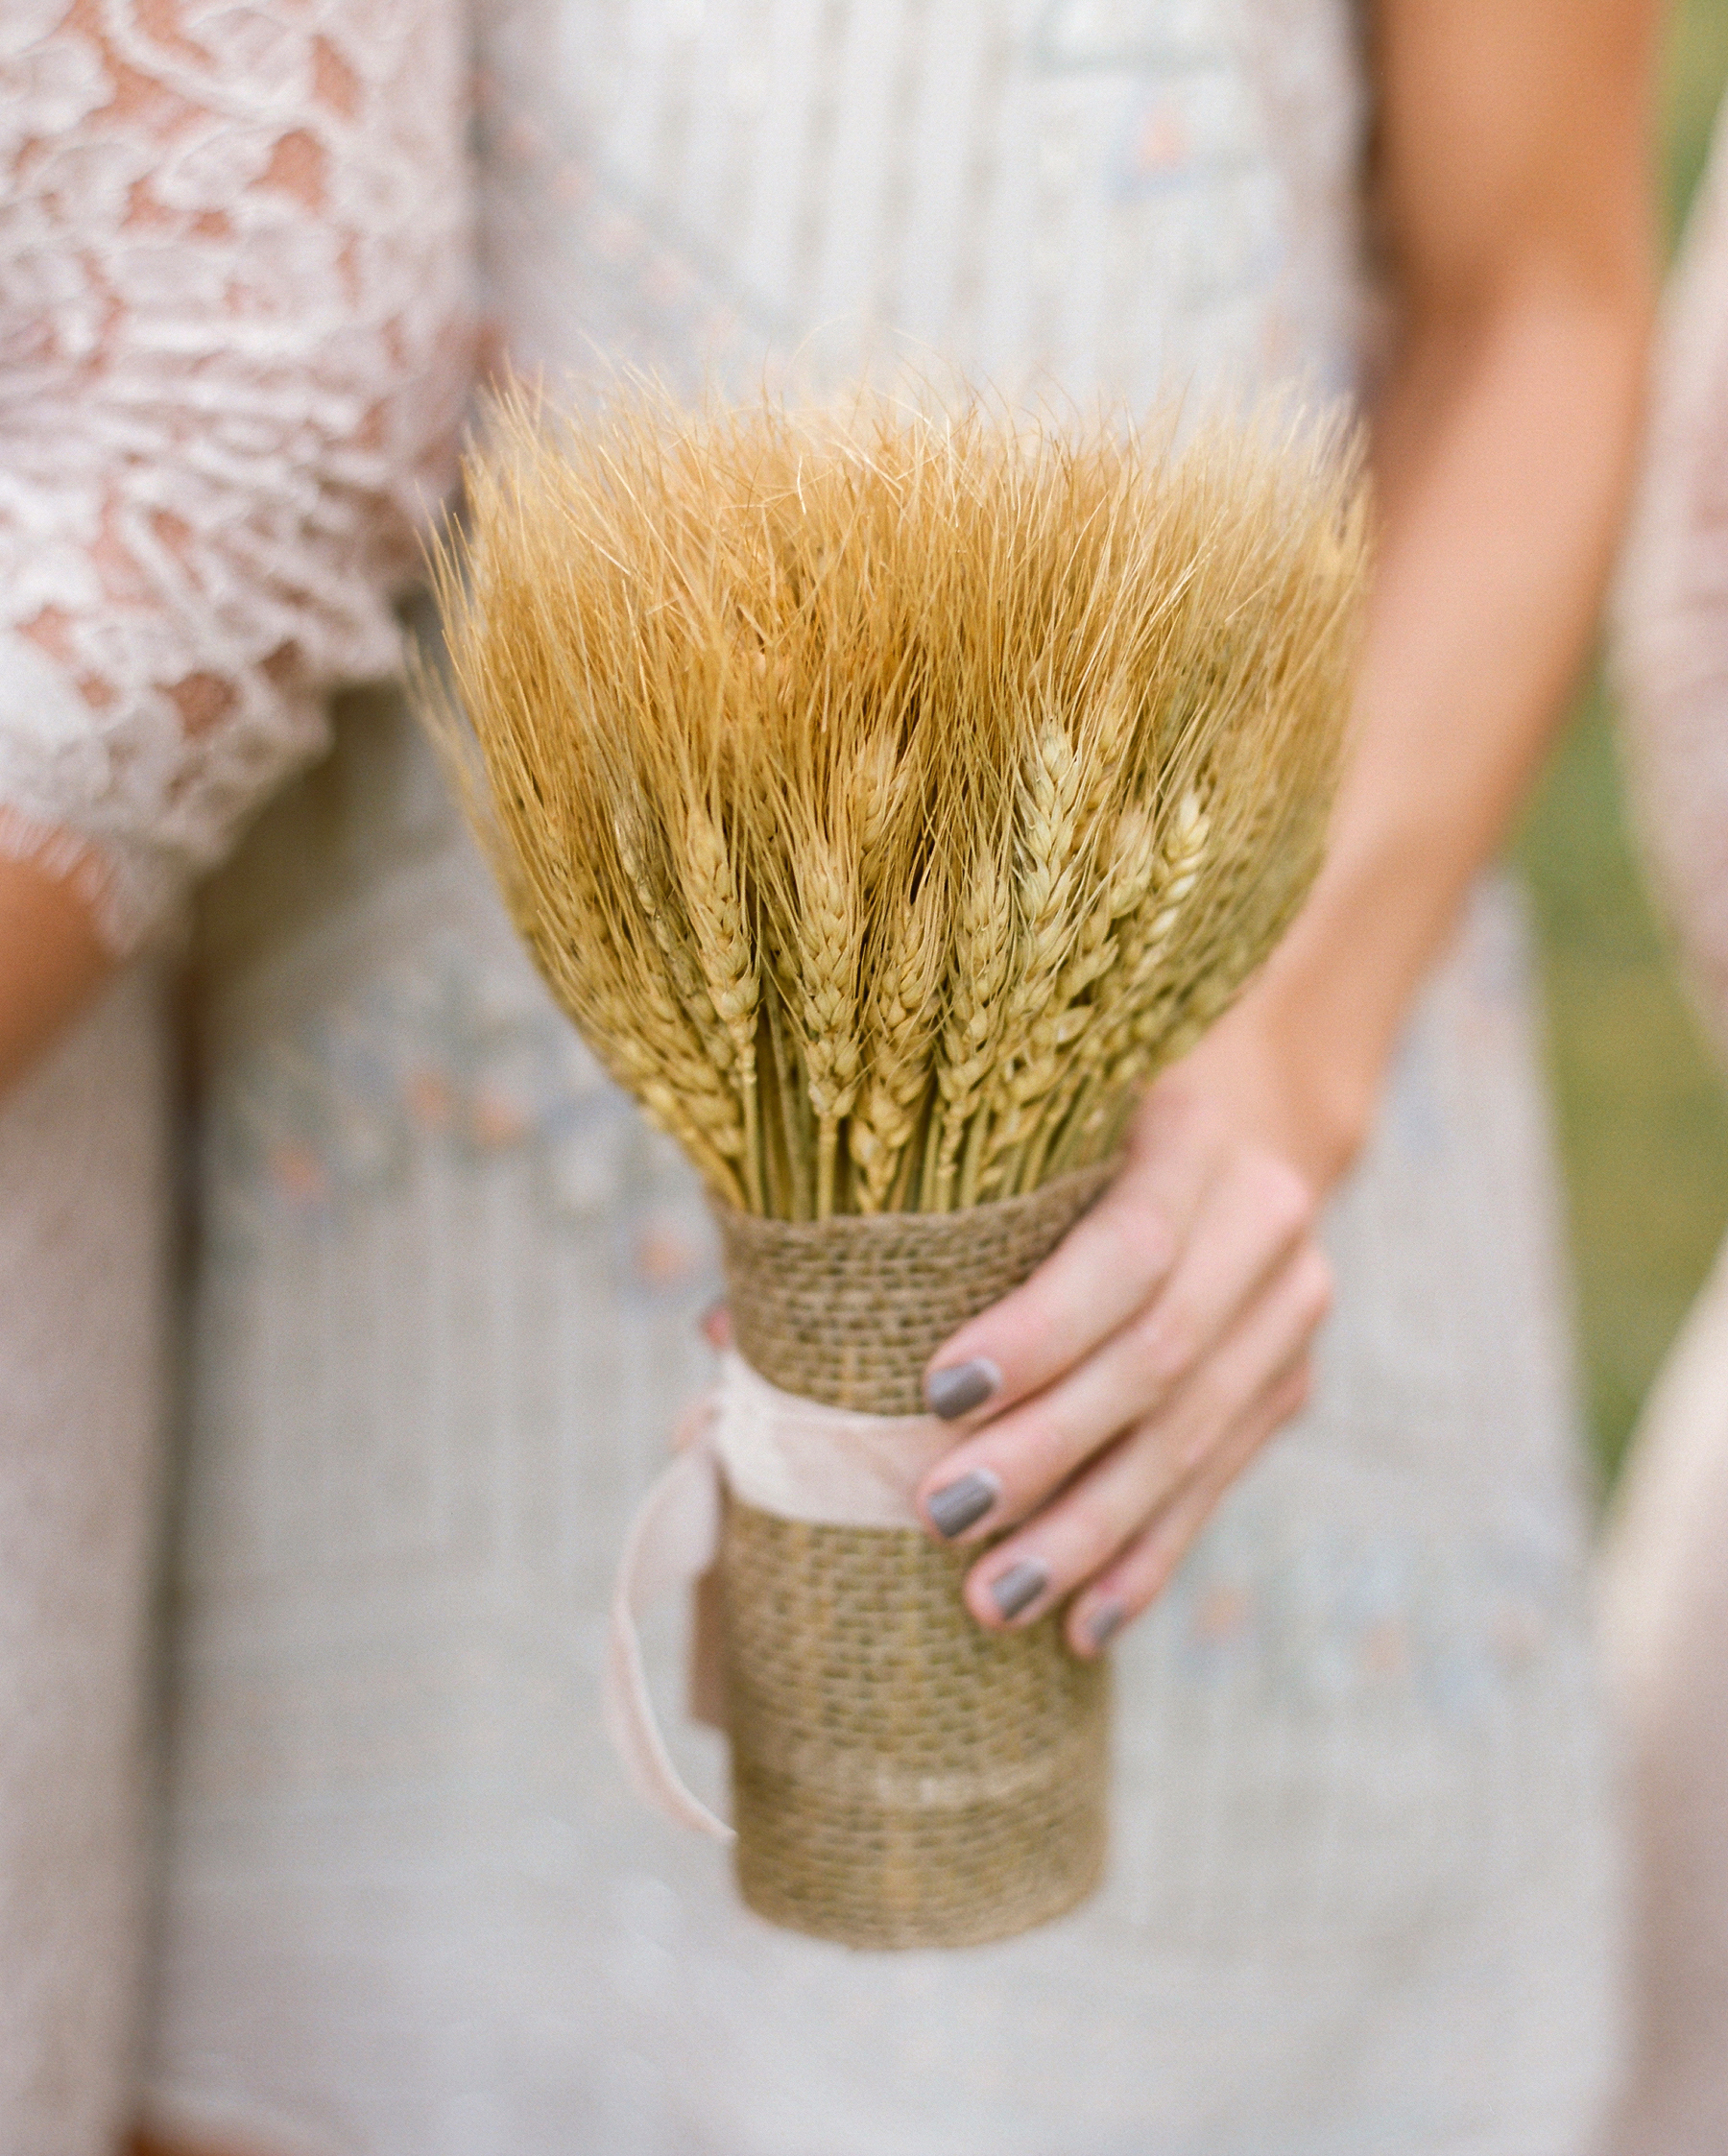 callie-eric-wedding-wheat-206-s112113-0815.jpg